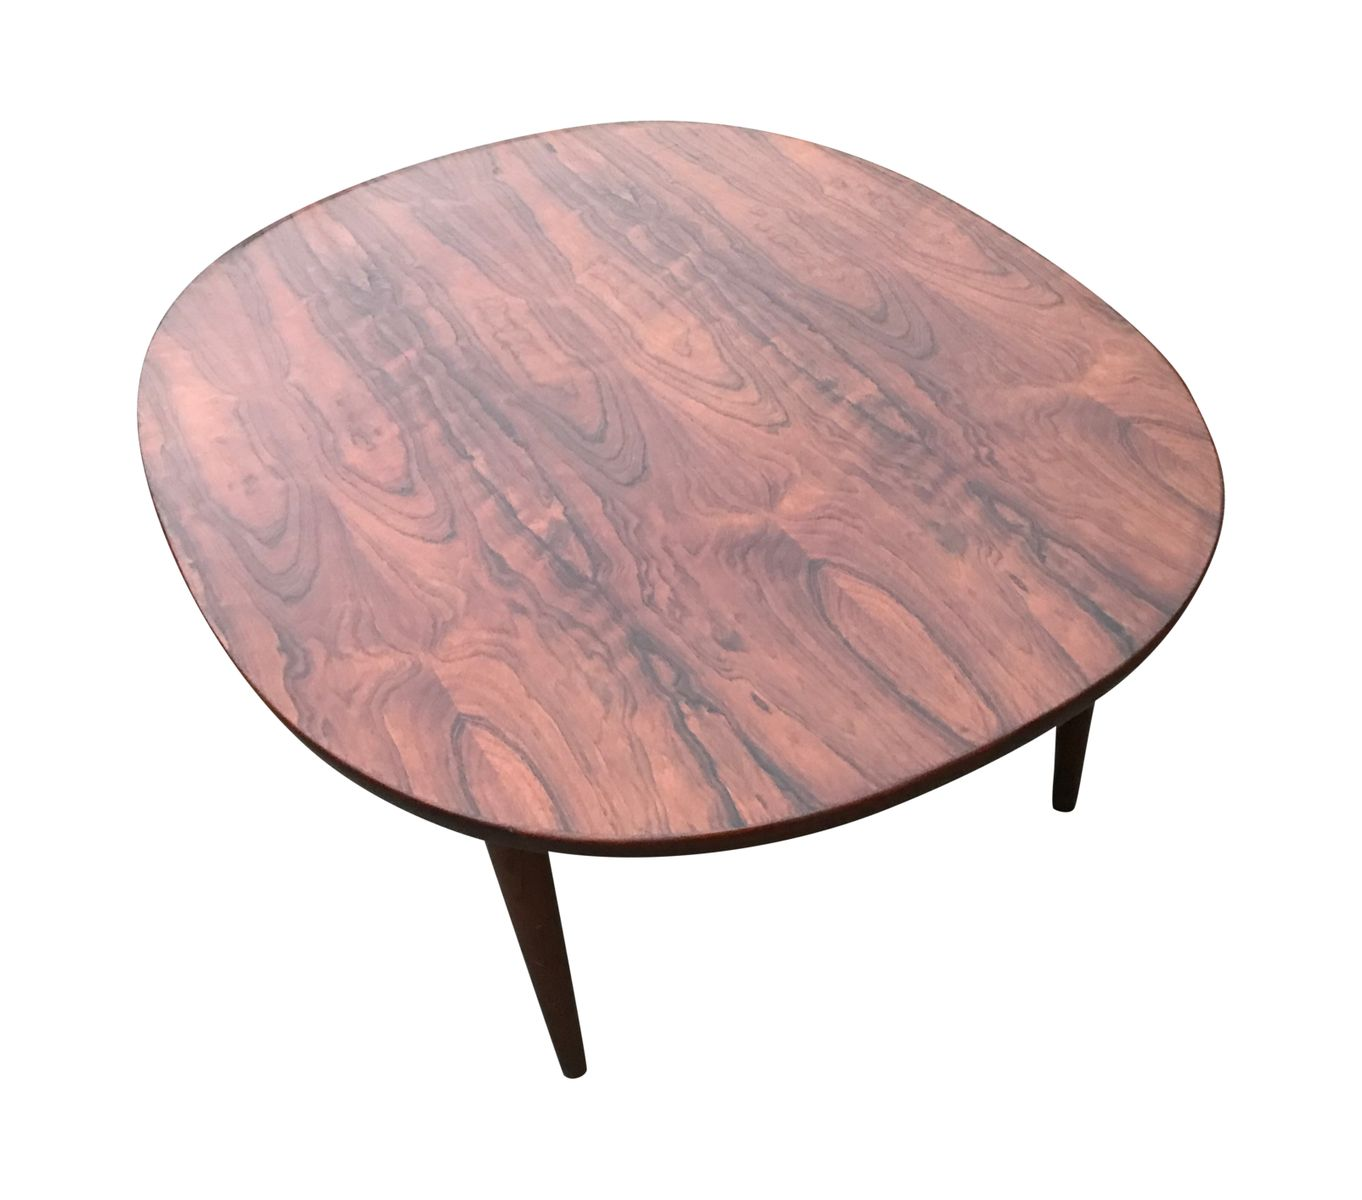 Vintage Oval Coffee Tables: Vintage Oval Rosewood Coffee Table For Sale At Pamono